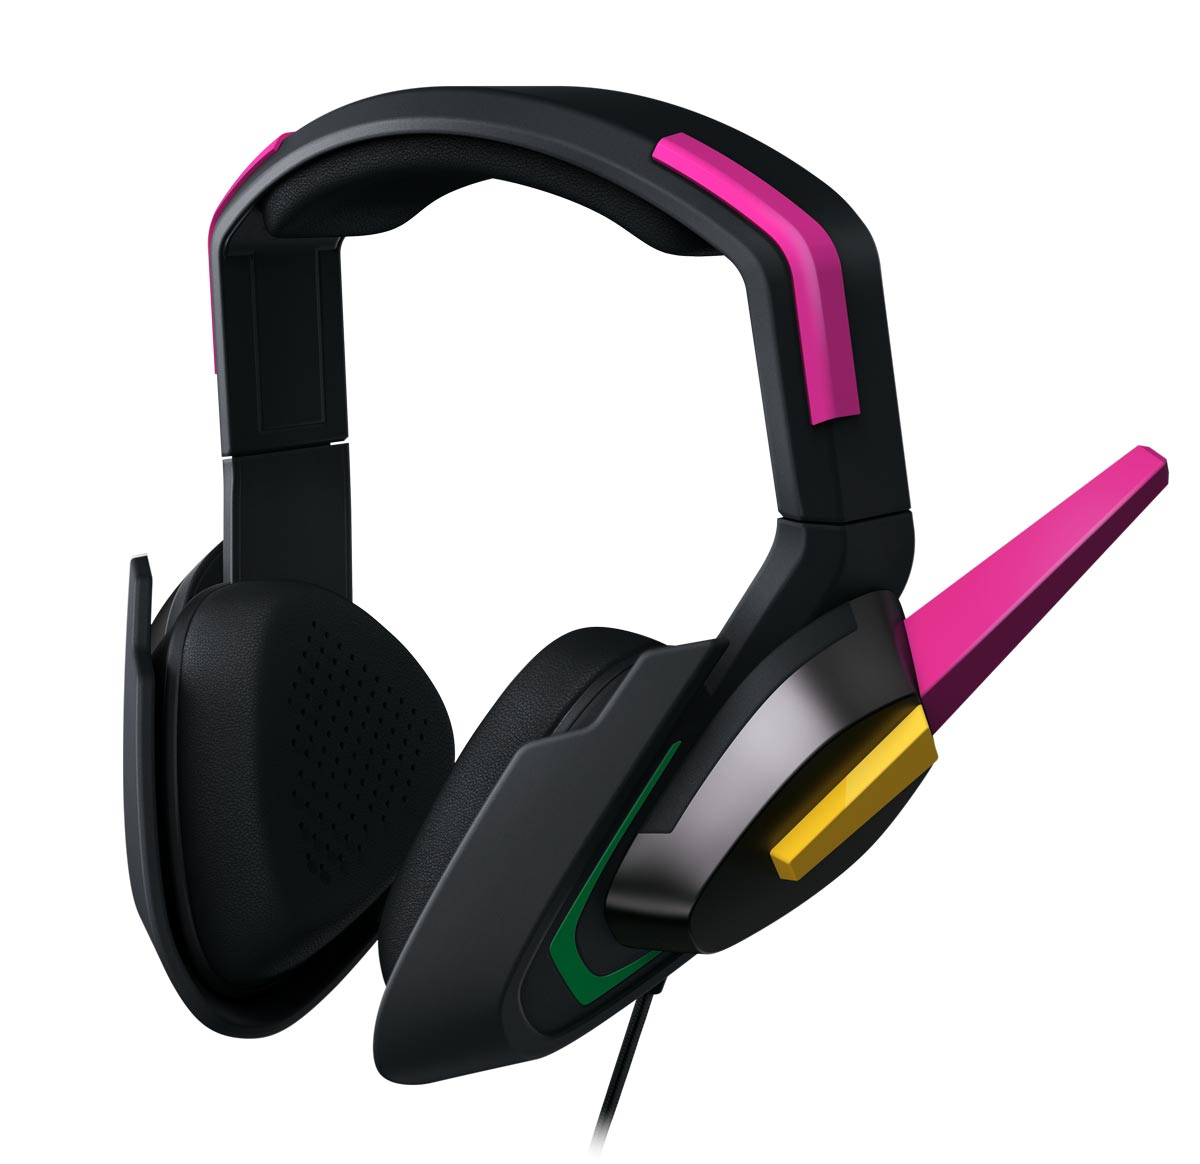 Razer Partners With Blizzard For Licensed Overwatch D Va